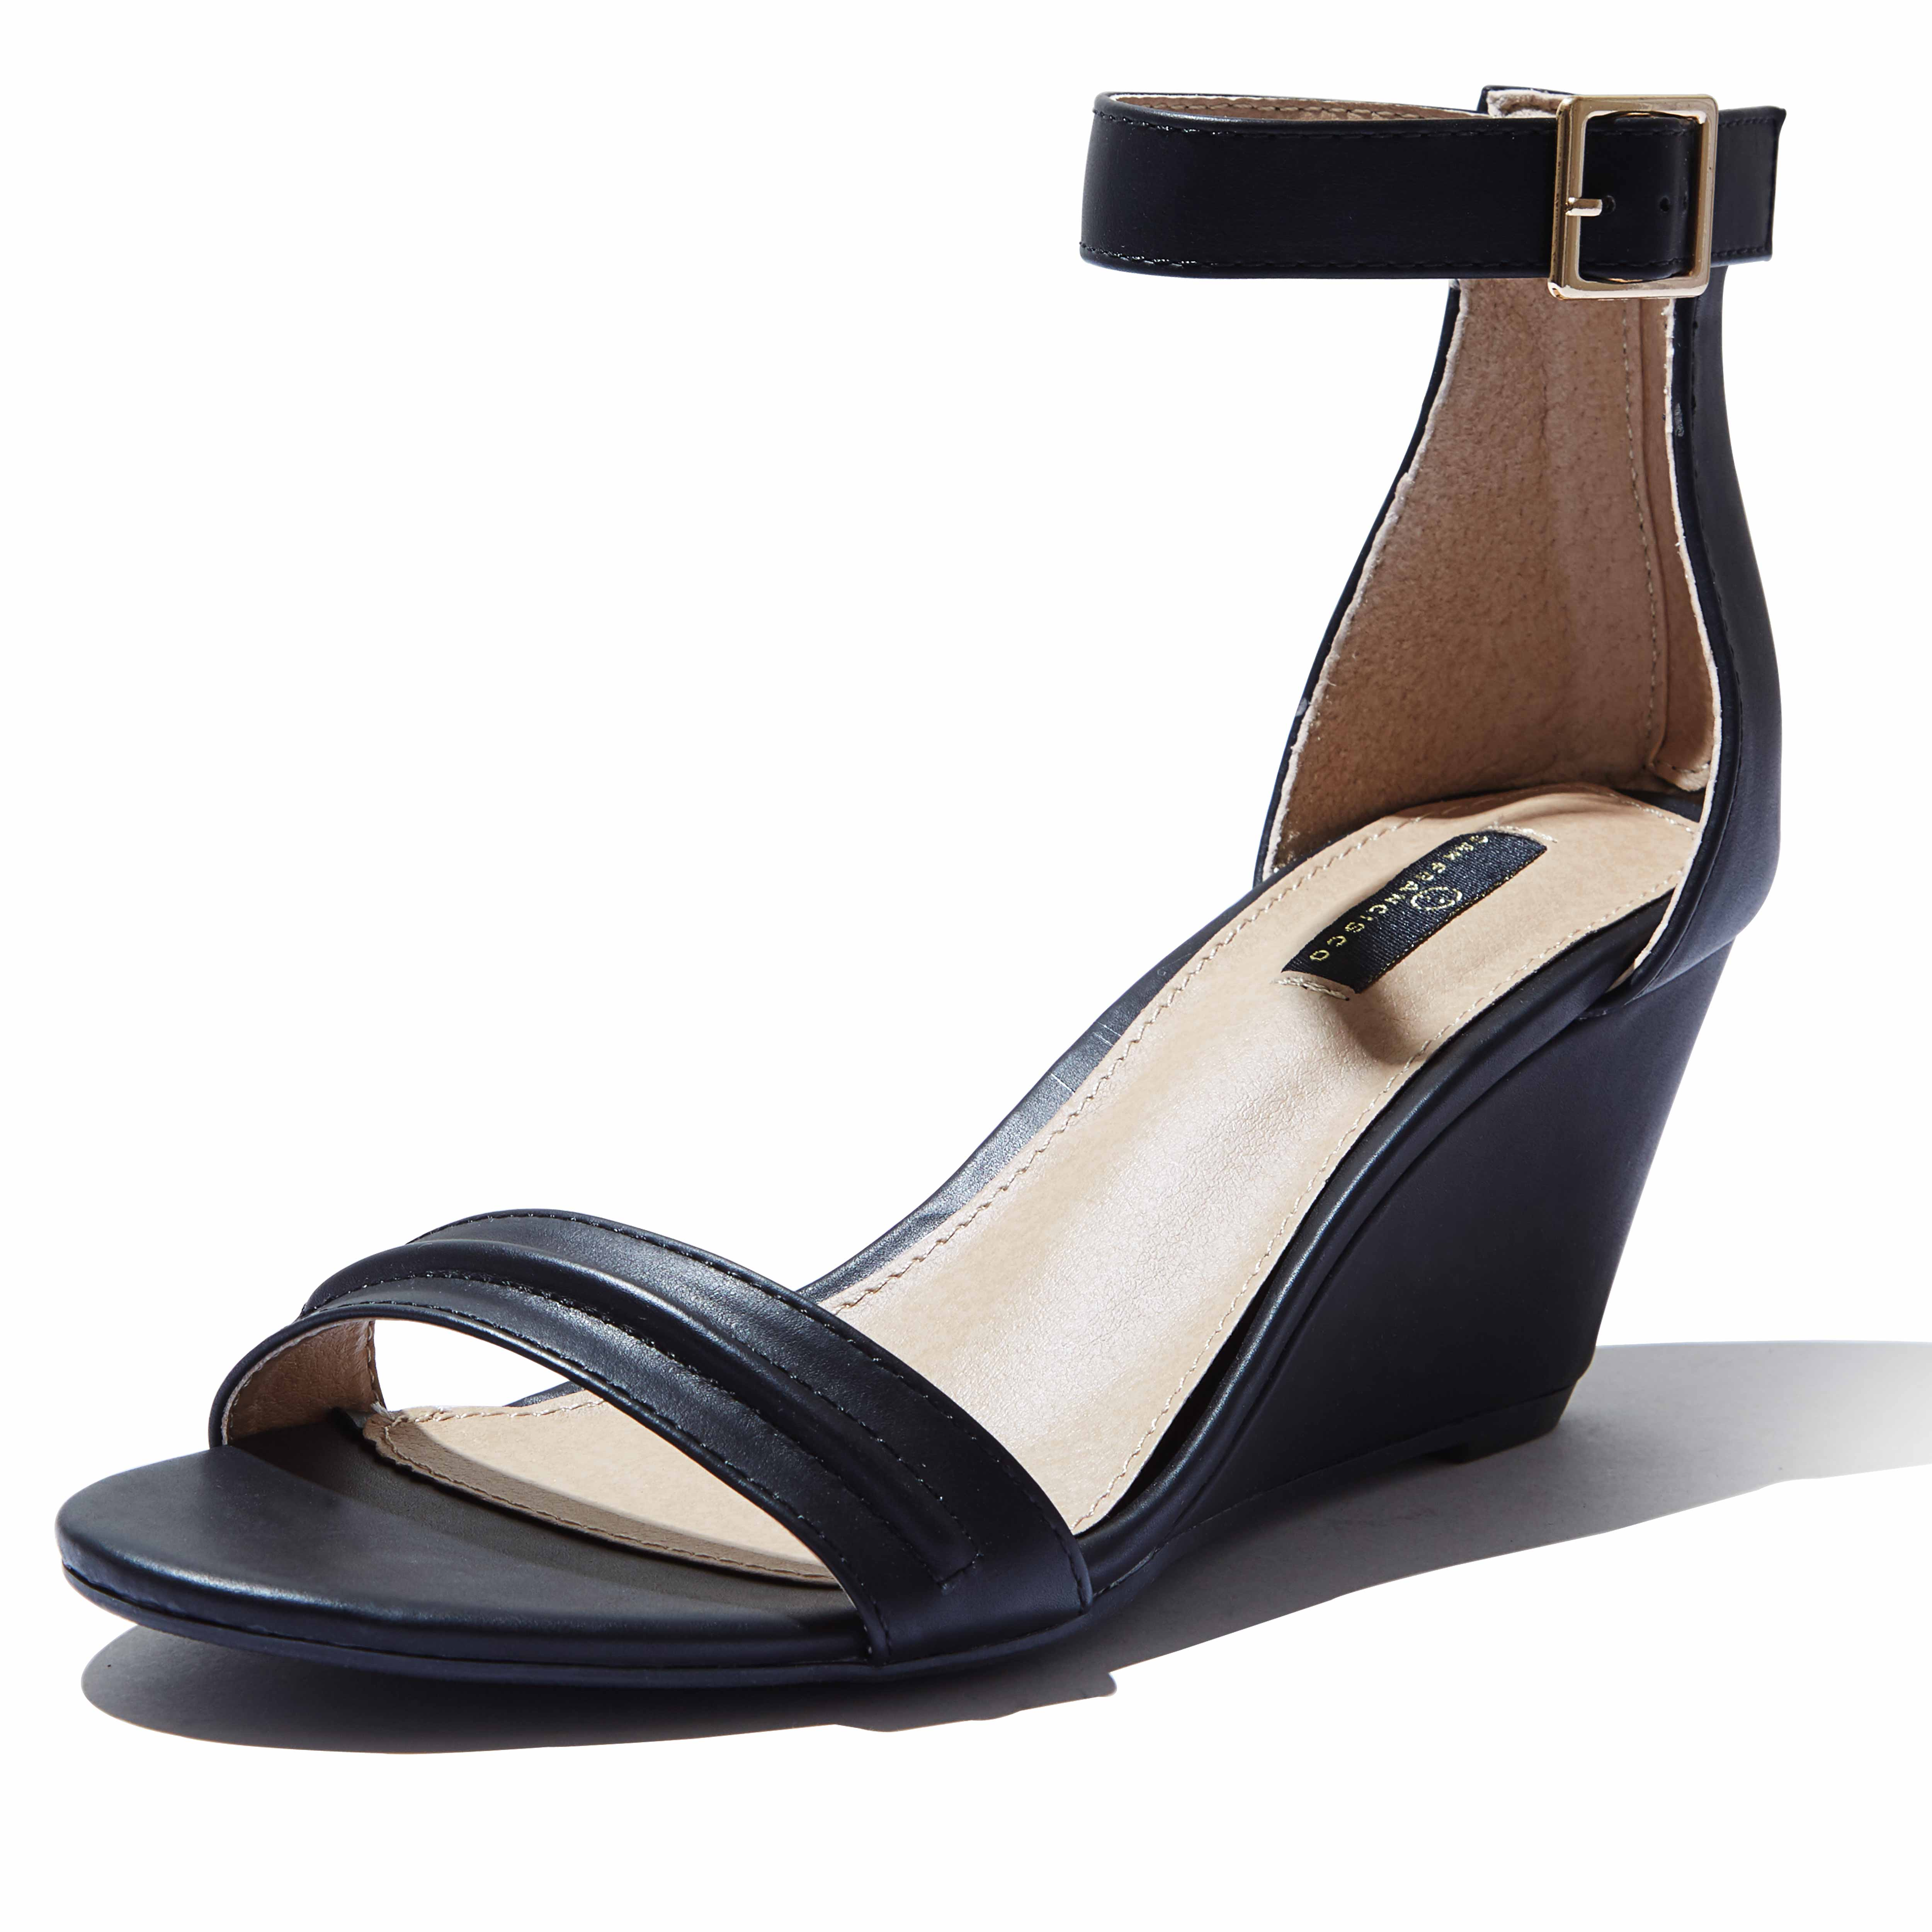 open toe wedge heels with ankle strap